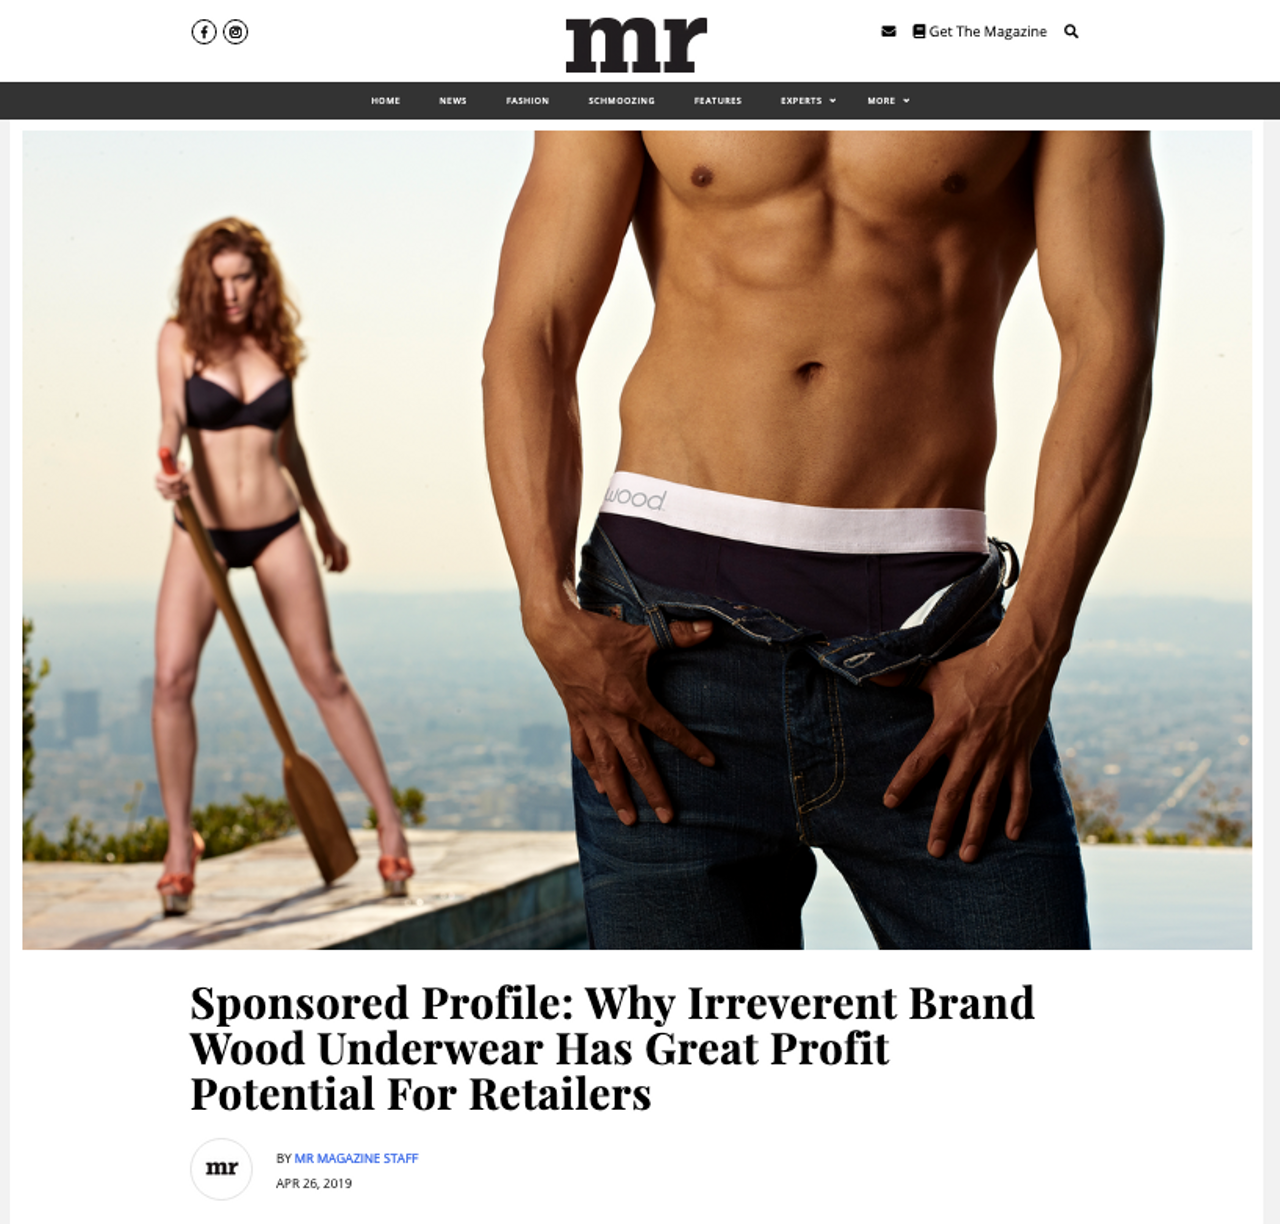 Why Irreverent Brand Wood Underwear Has Great Potential...